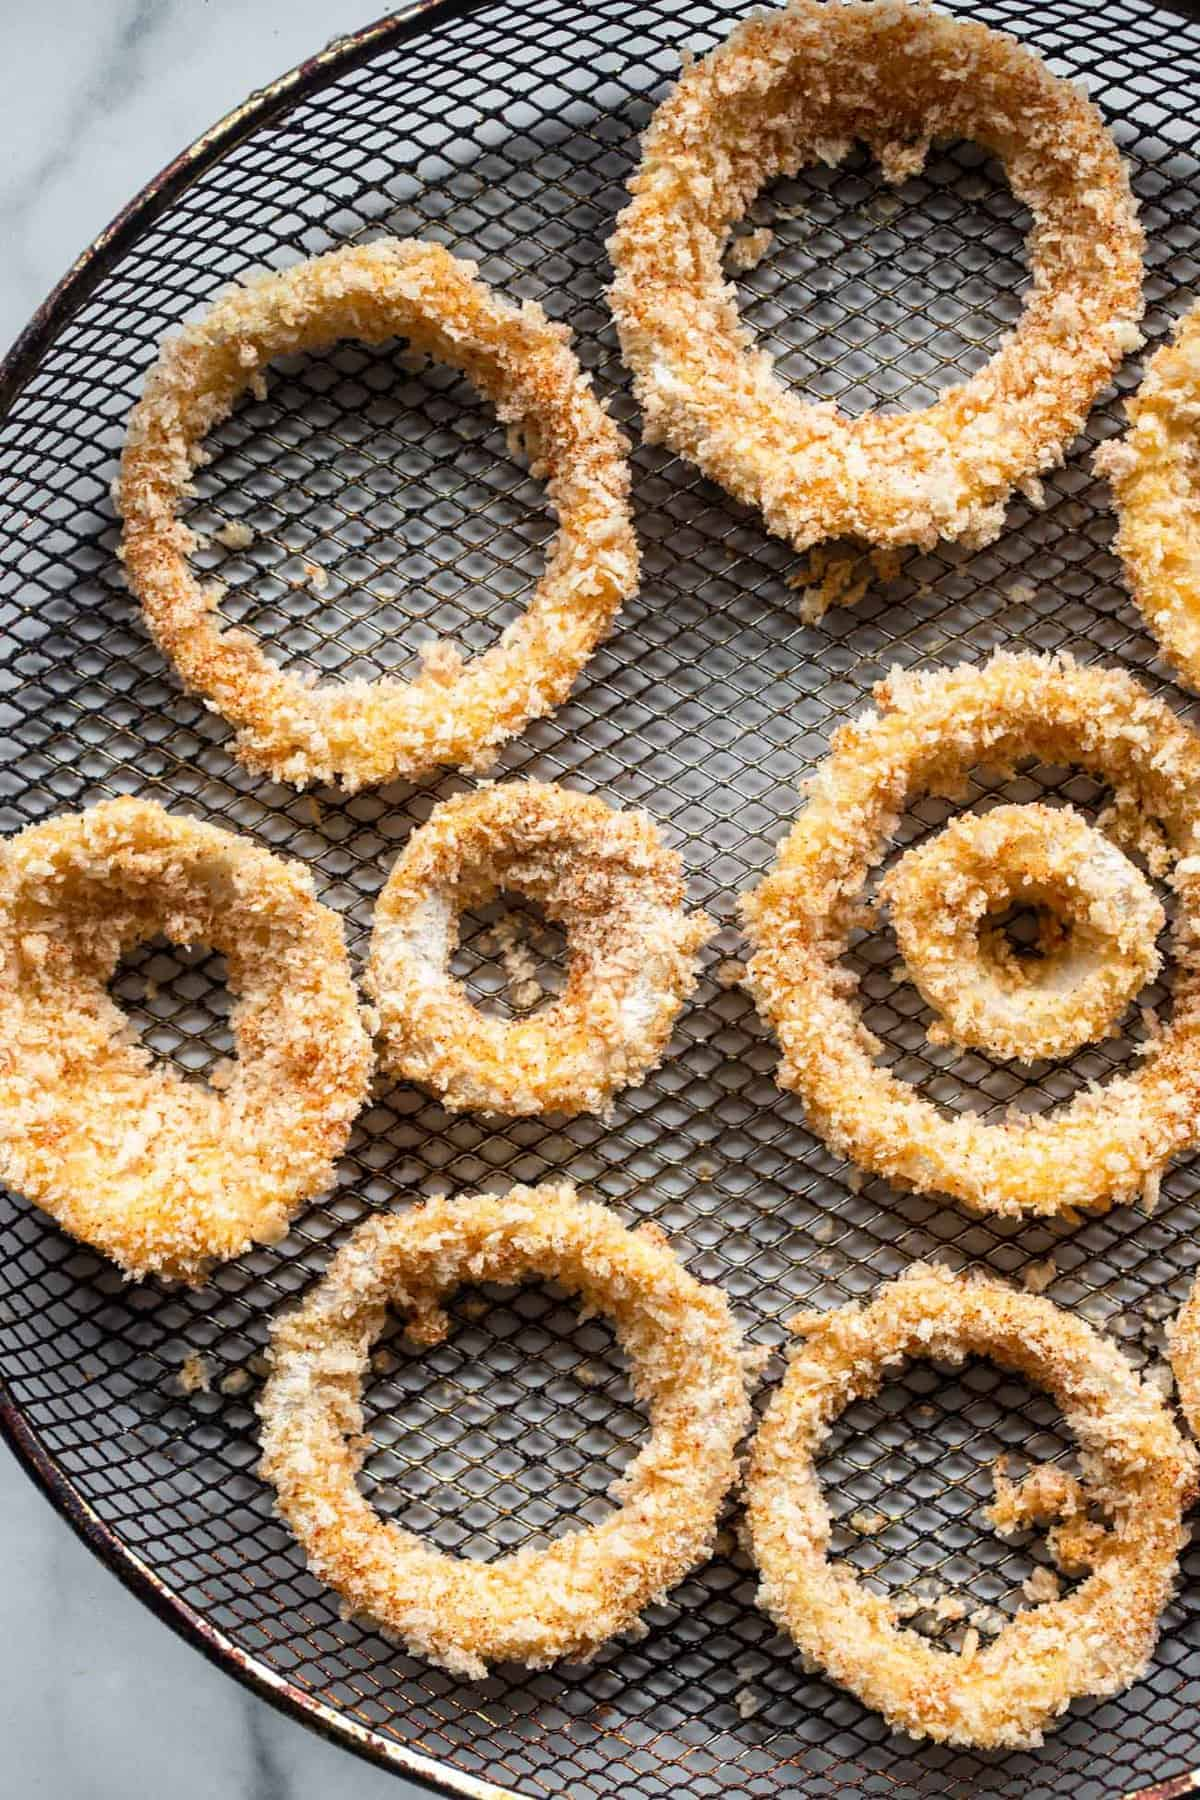 Onion rings air fryer on a mesh basket ready to be cooked